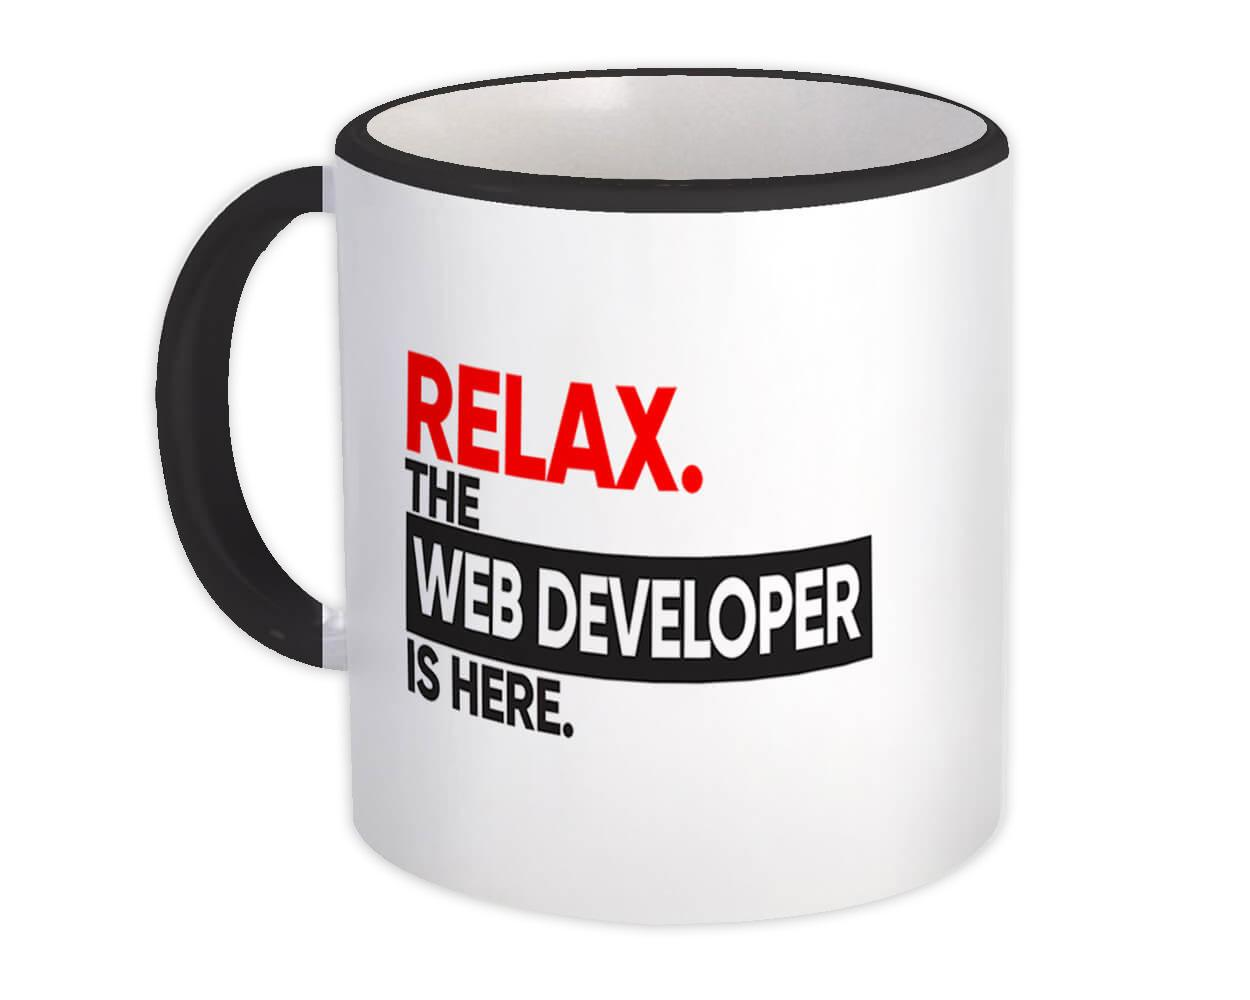 Relax The WEB DEVELOPER is here : Gift Mug Occupation Profession Work Office